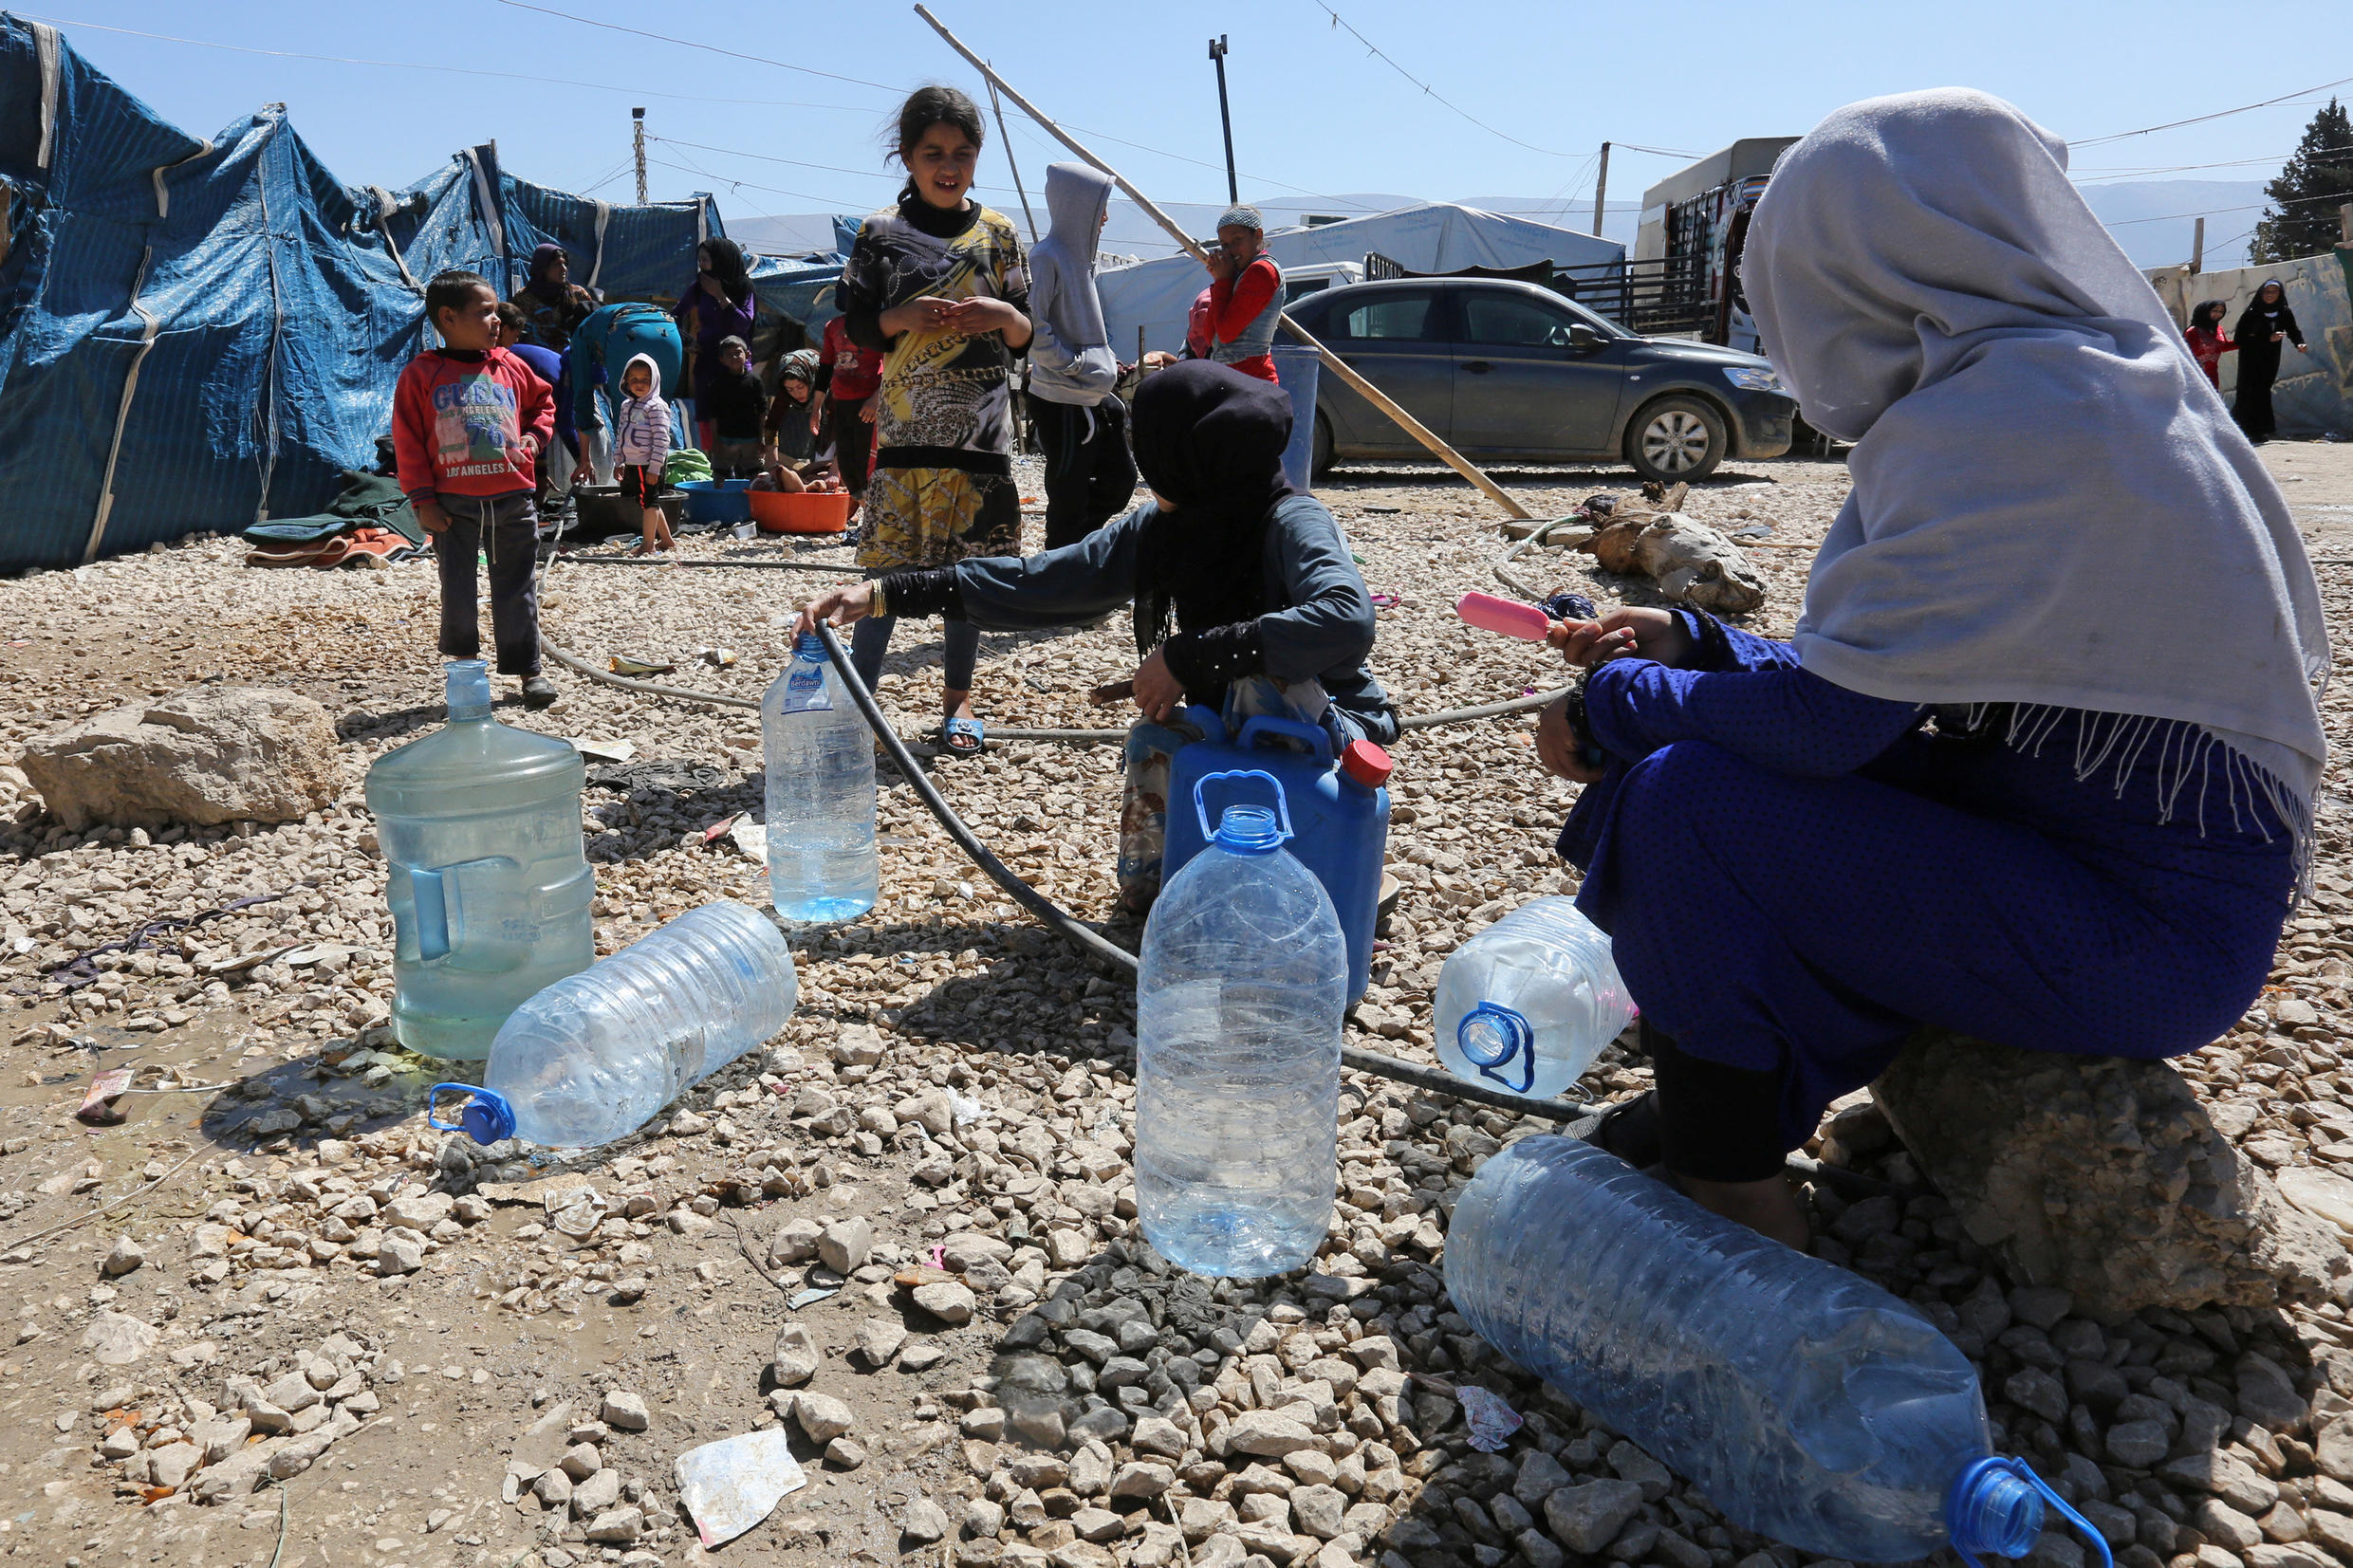 Syrian refugees at a makeshift settlement in Bar Elias town, in the Bekaa valley, Lebanon.